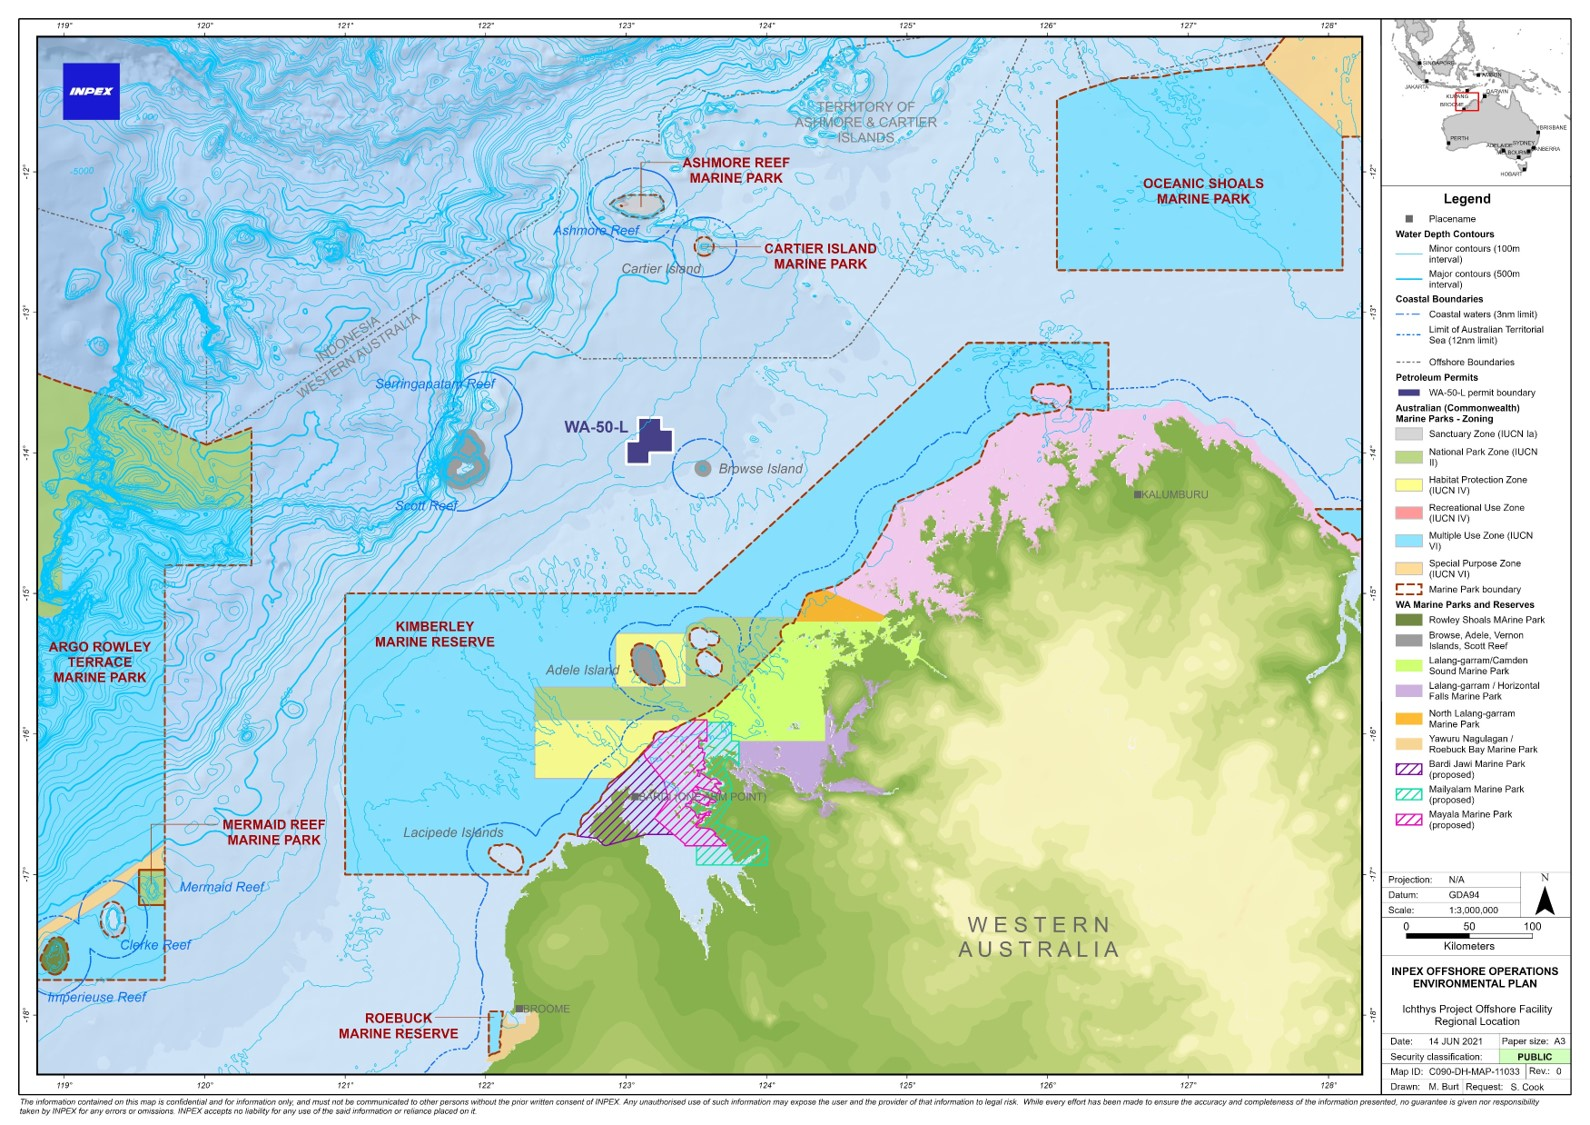 Location map - Activity: Ichthys Project Offshore Facility (Operation) (refer to description)